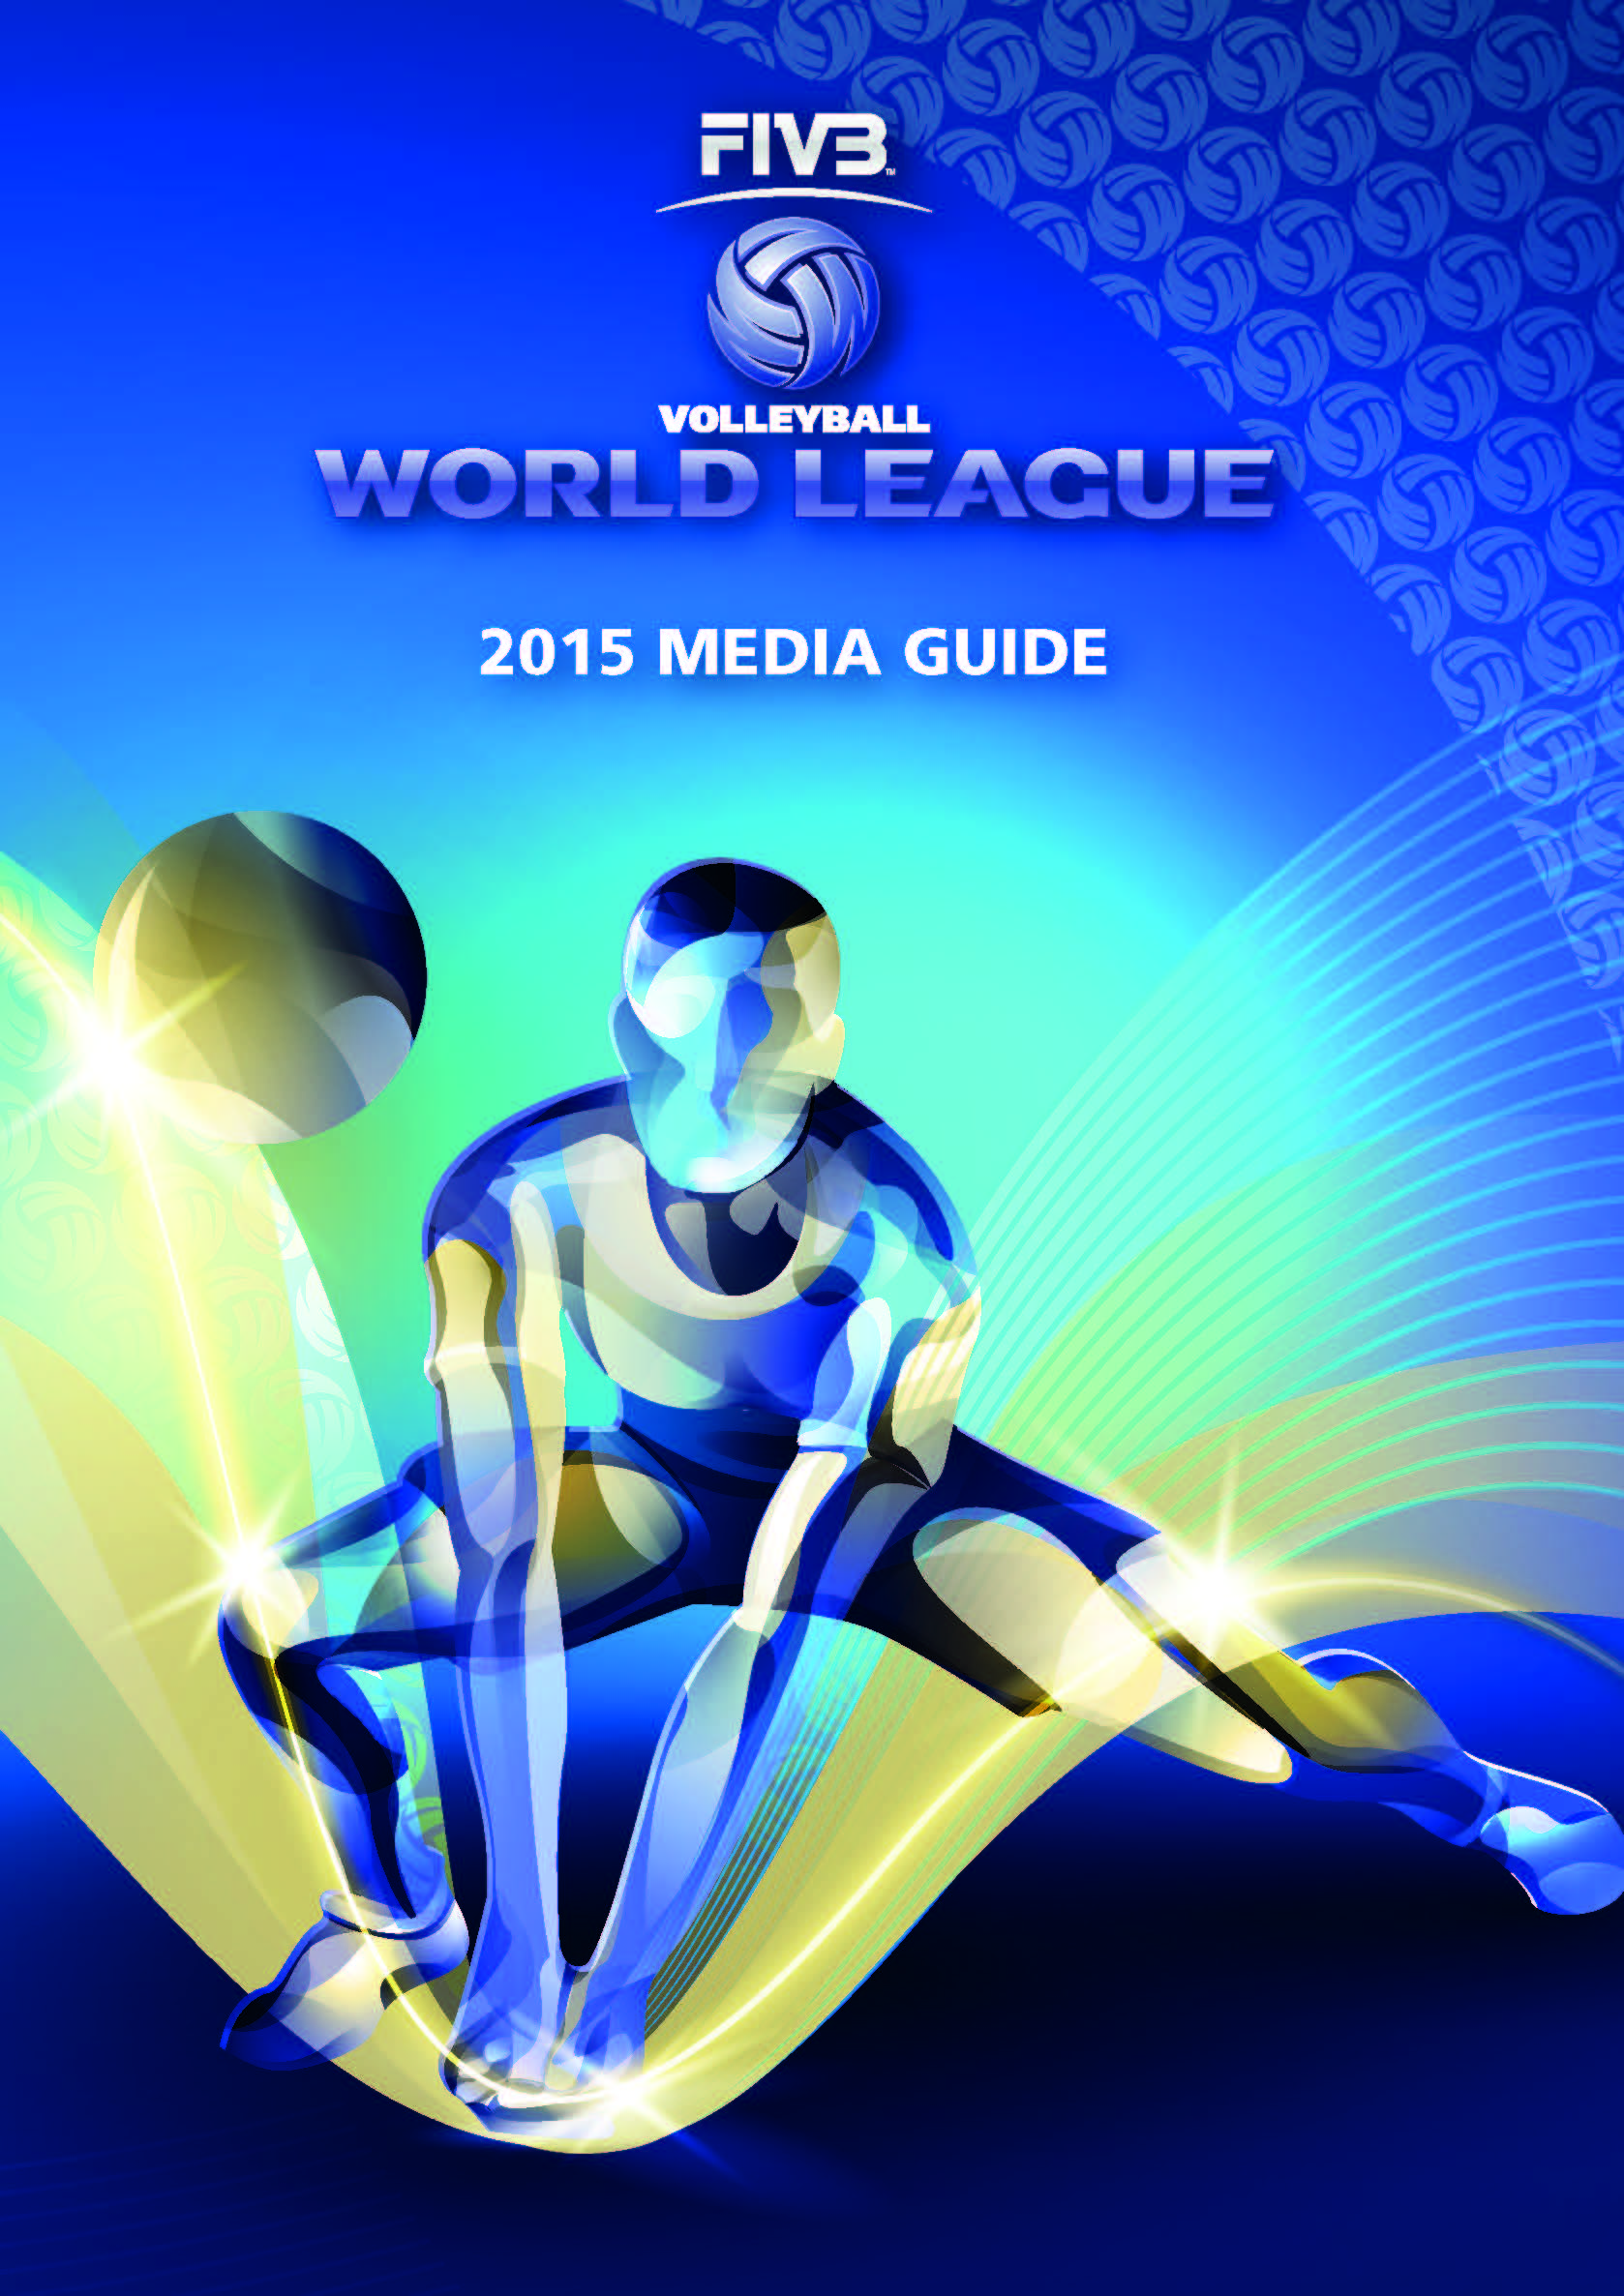 FIVB Volleyball World League 2015 Media Guide